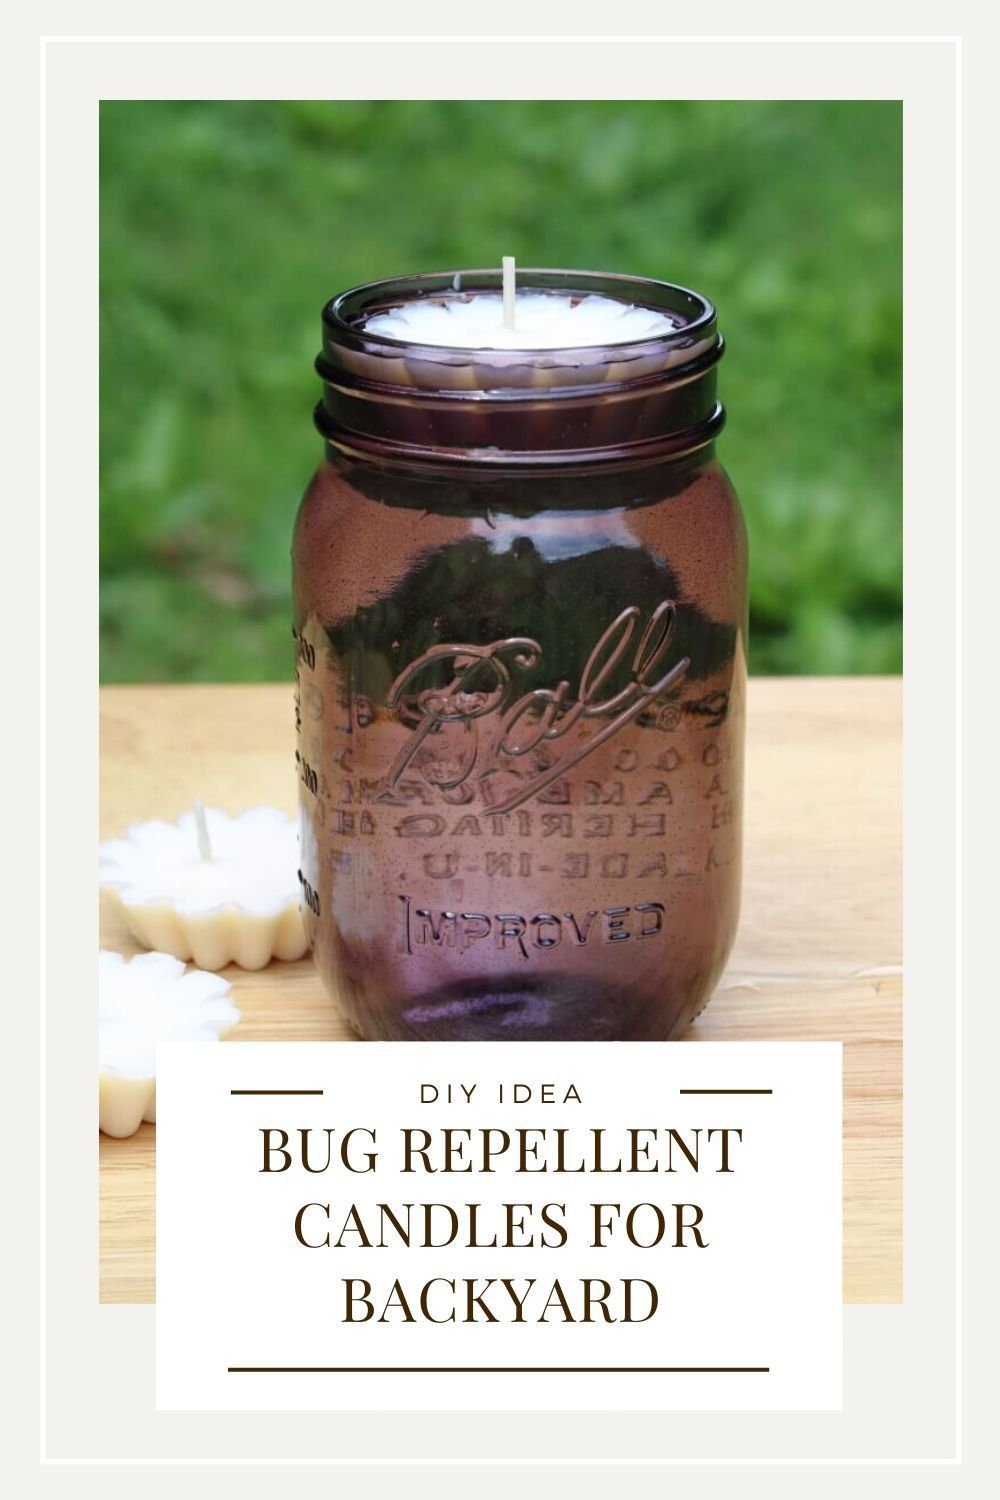 DIY Bug Repellent Floating Candles With Essential Oils in